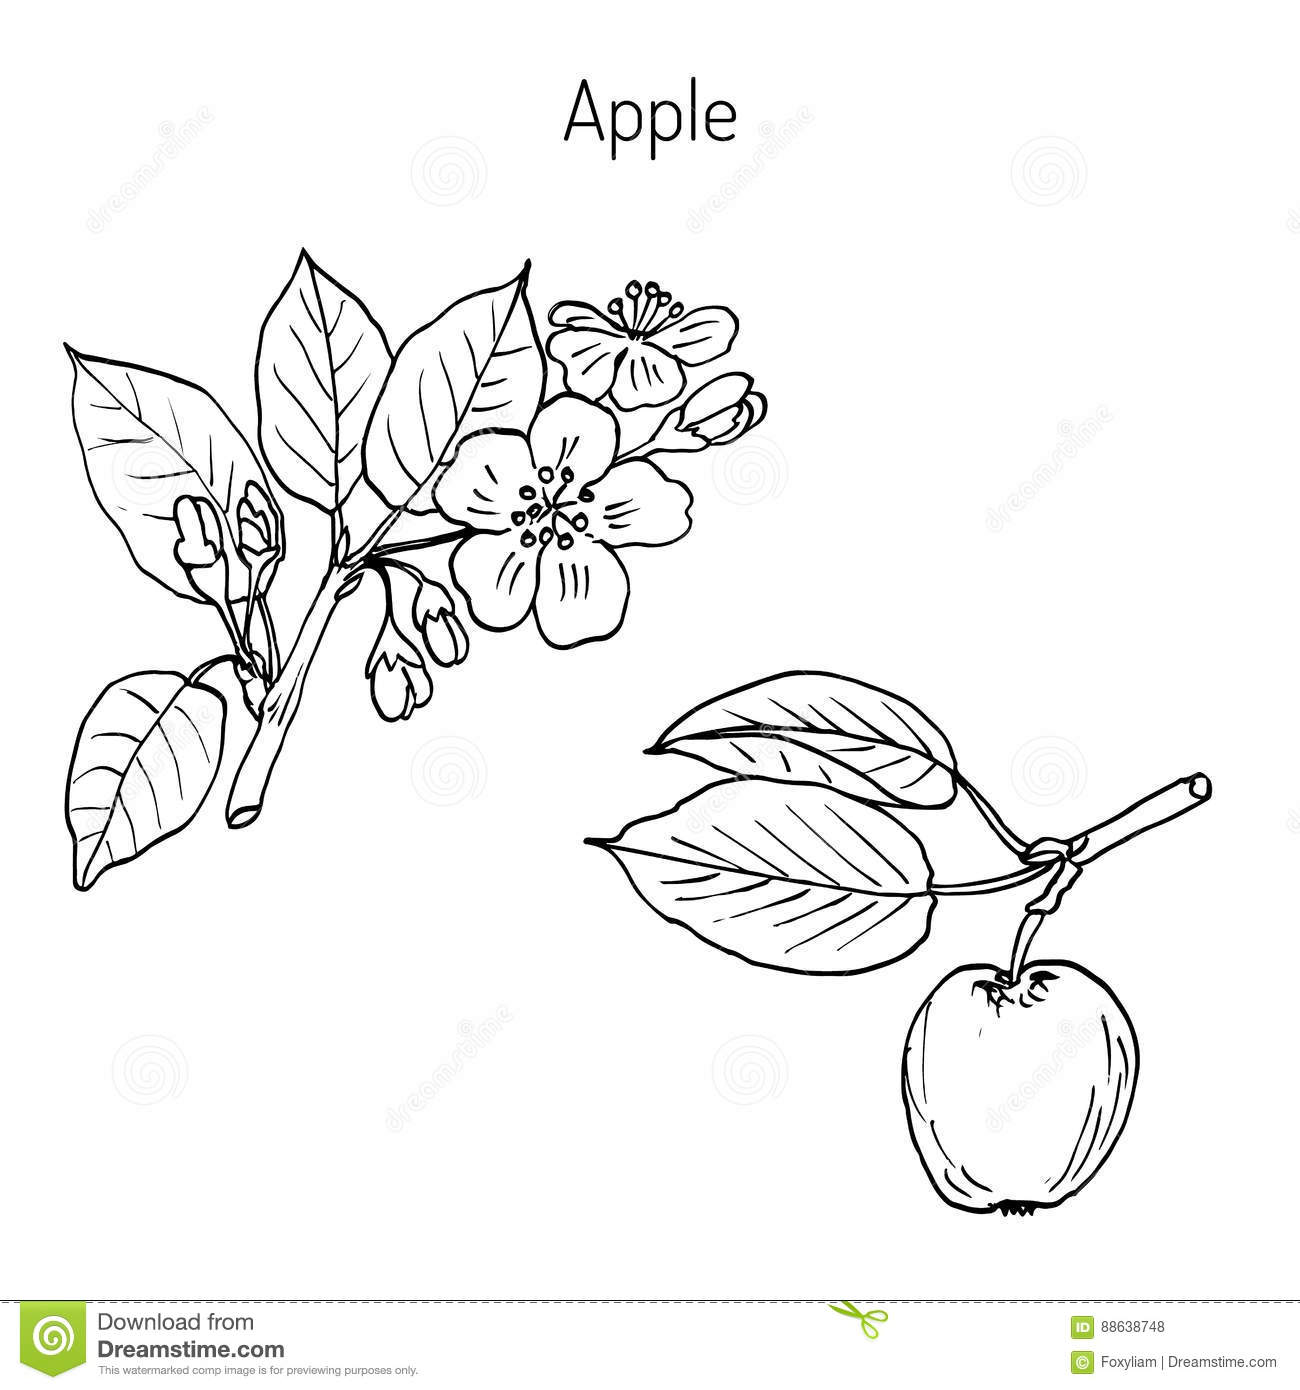 Branche de pommier de dessin de main illustration de - Dessin pomme apple ...